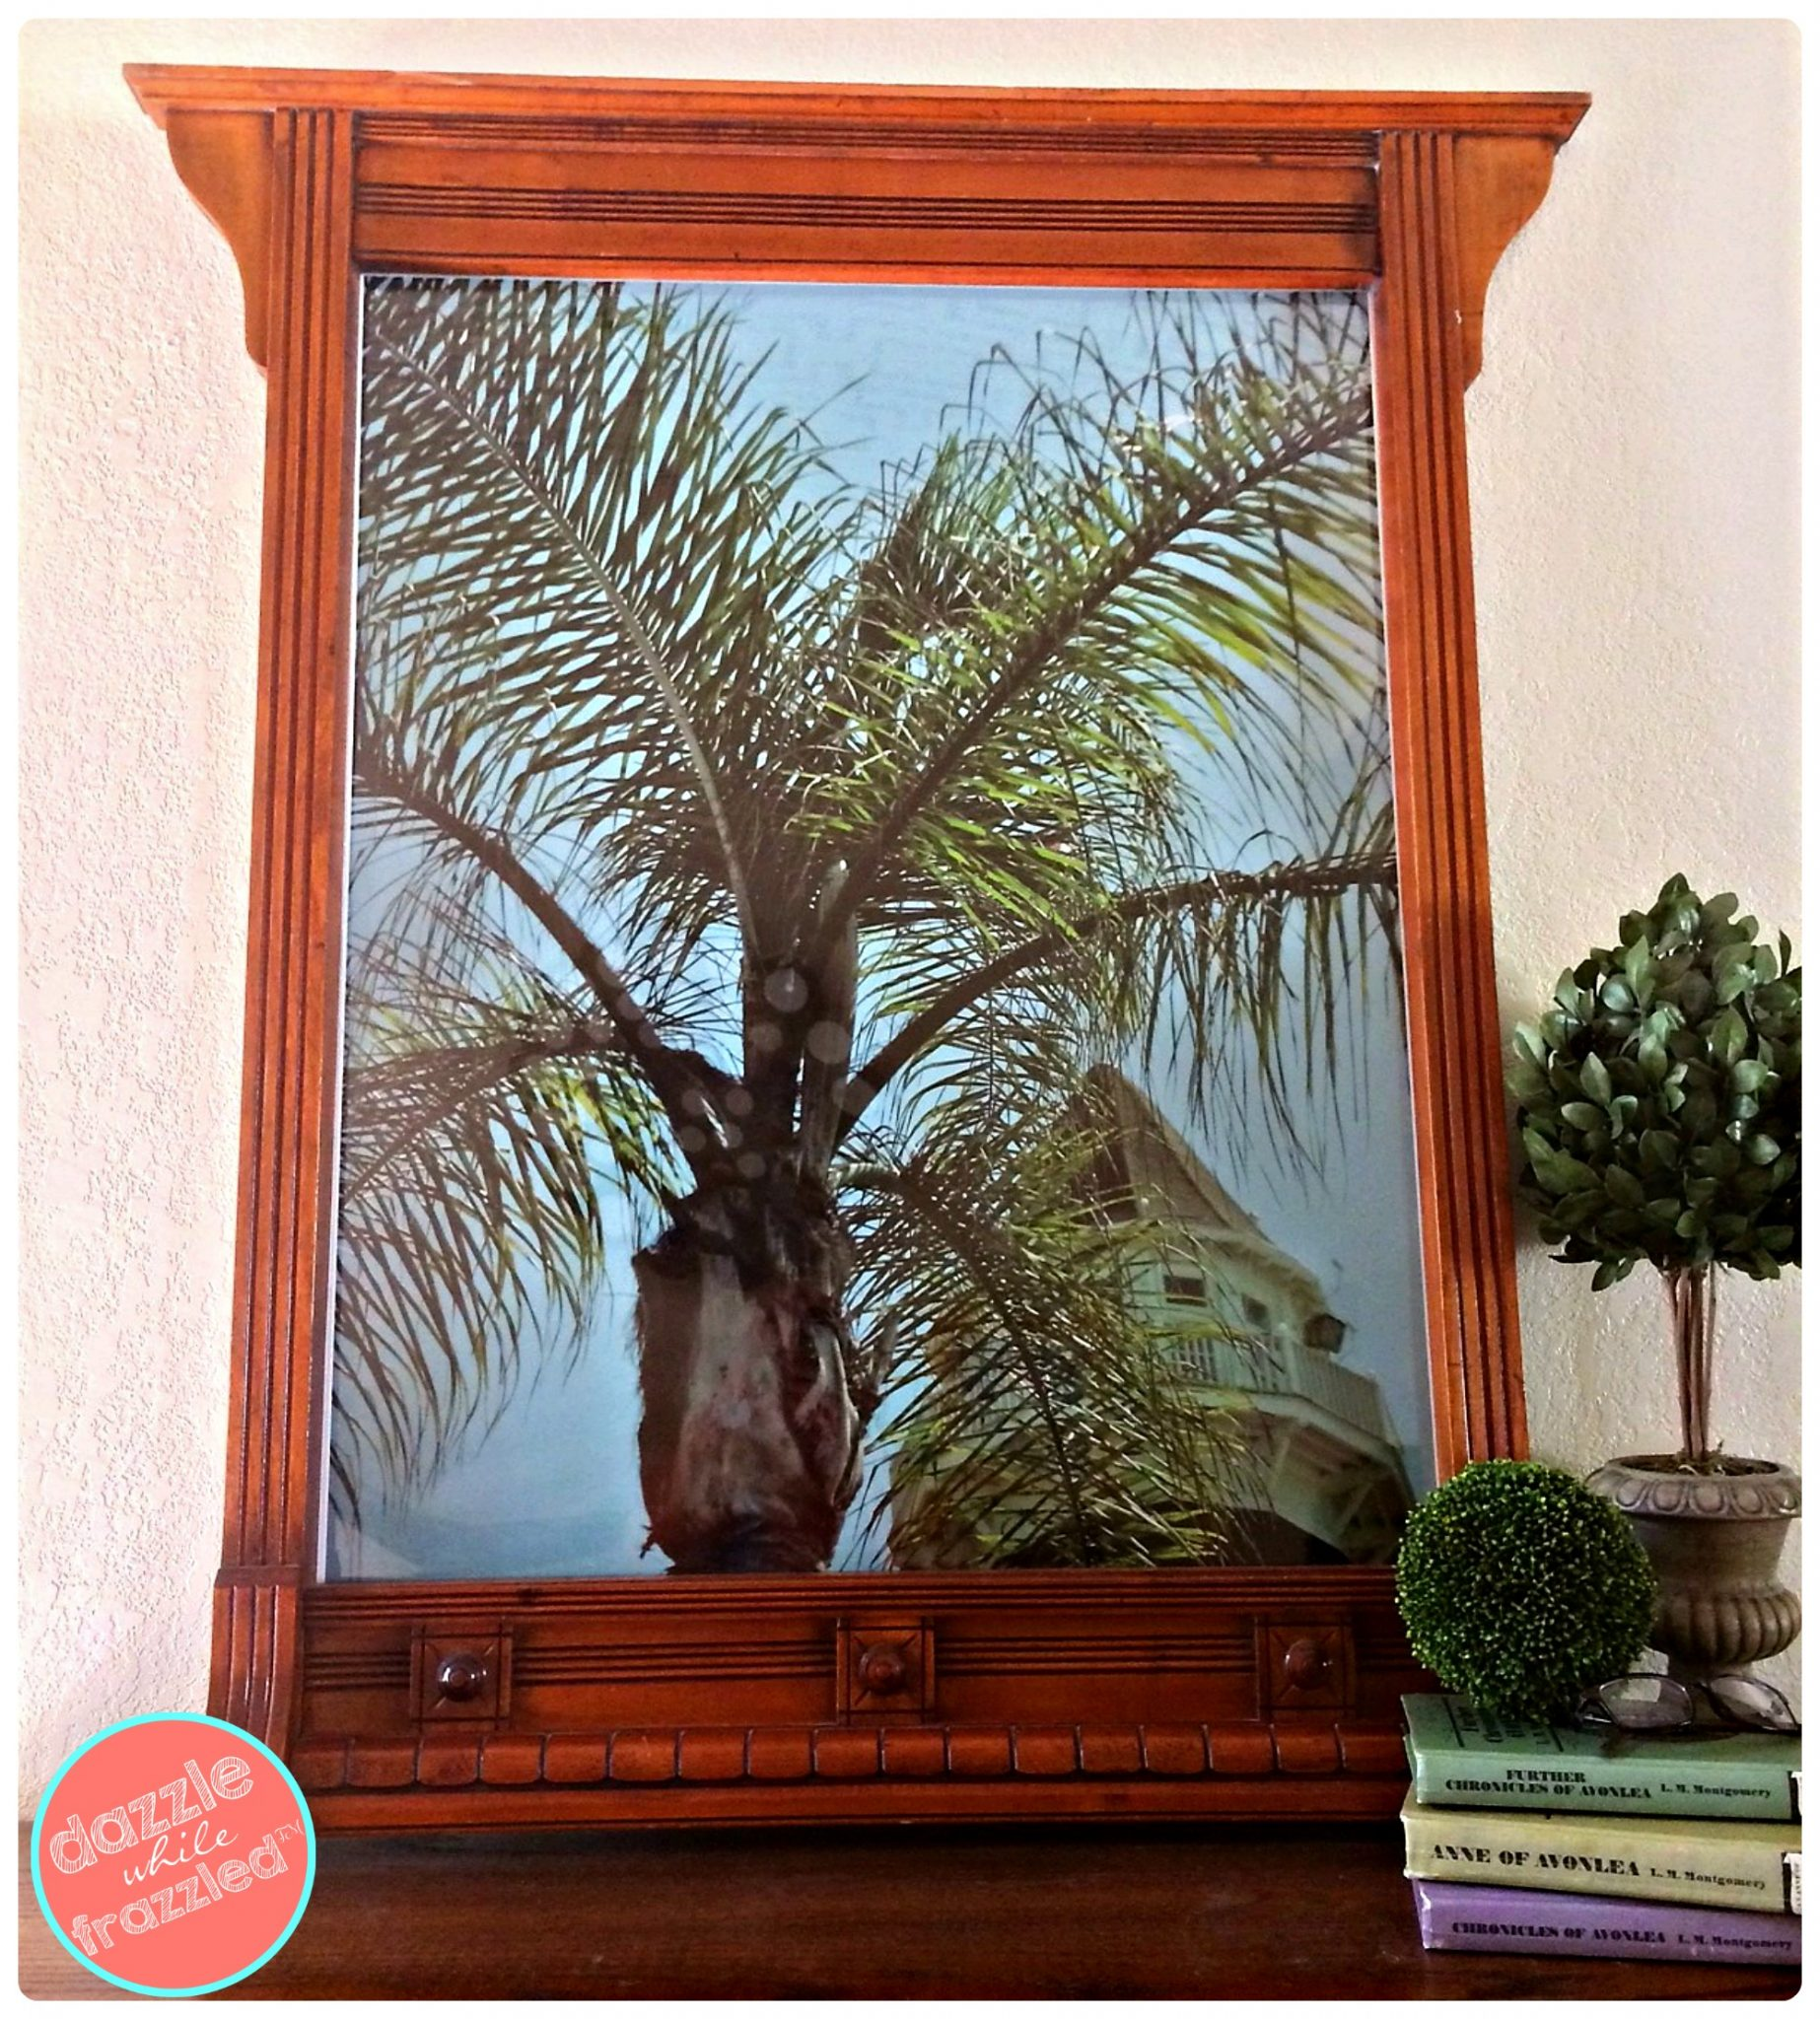 How To Make Large Wall Art From Old Dresser Mirror Dazzle While Frazzled